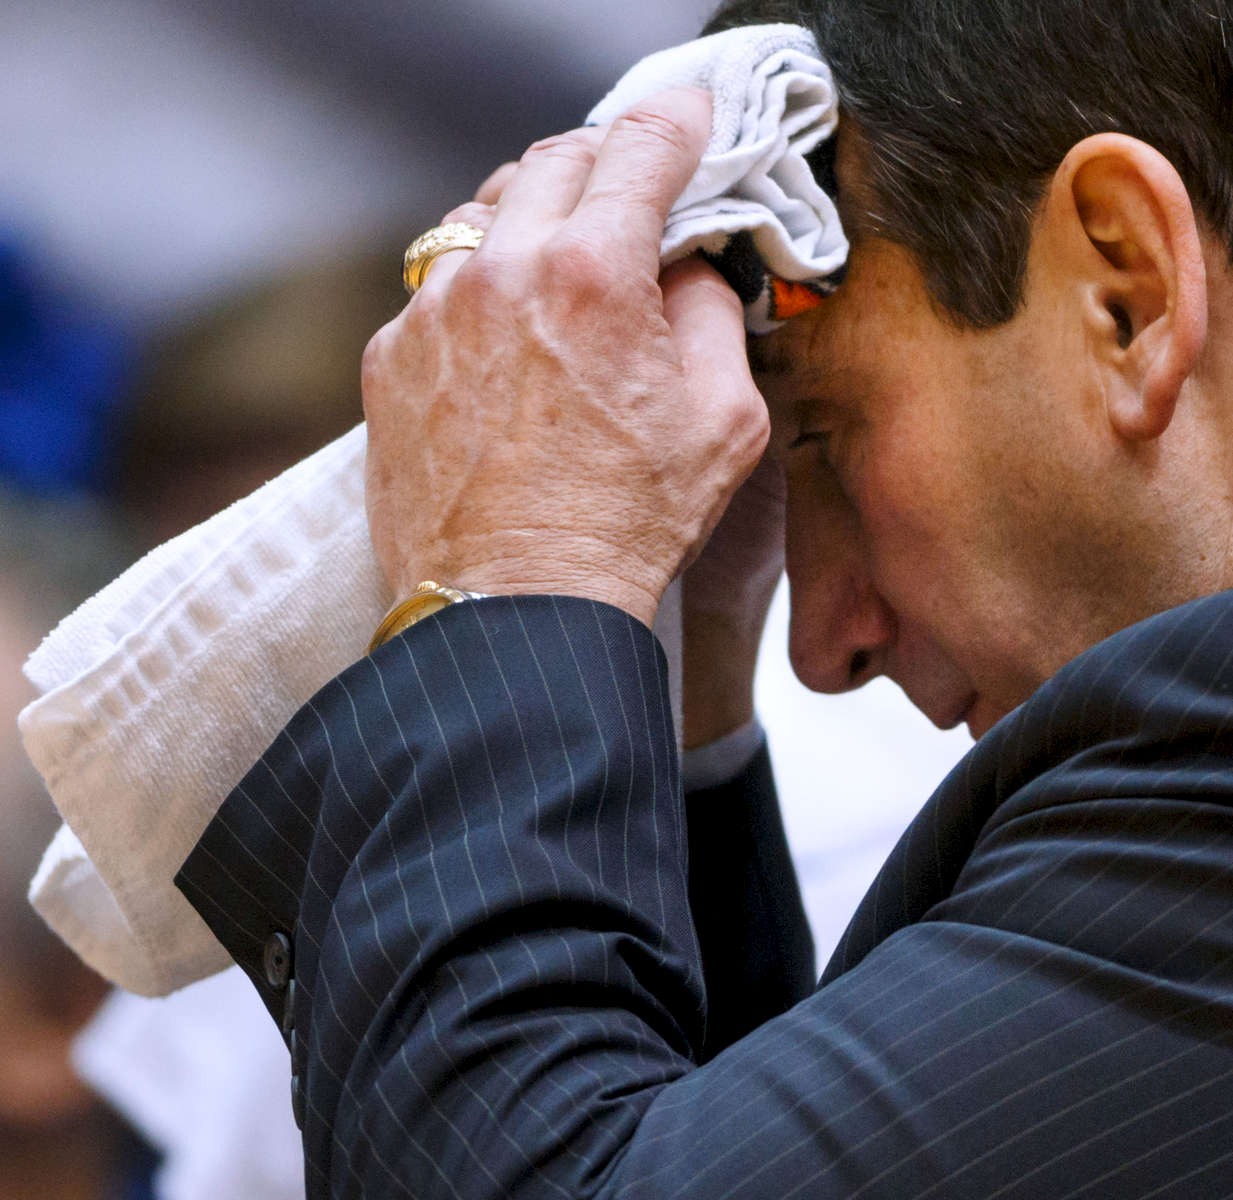 Second Place | Multiple PhotosJerry Wolford, News & RecordDuke head coach Mike Krzyzewski  wipes his brow with a towel as the game heats up. ACC Basketball action with Pittsburgh at Duke  in Cameron Indoor Stadium on Monday, January 19, 2015, in Durham, N.C.